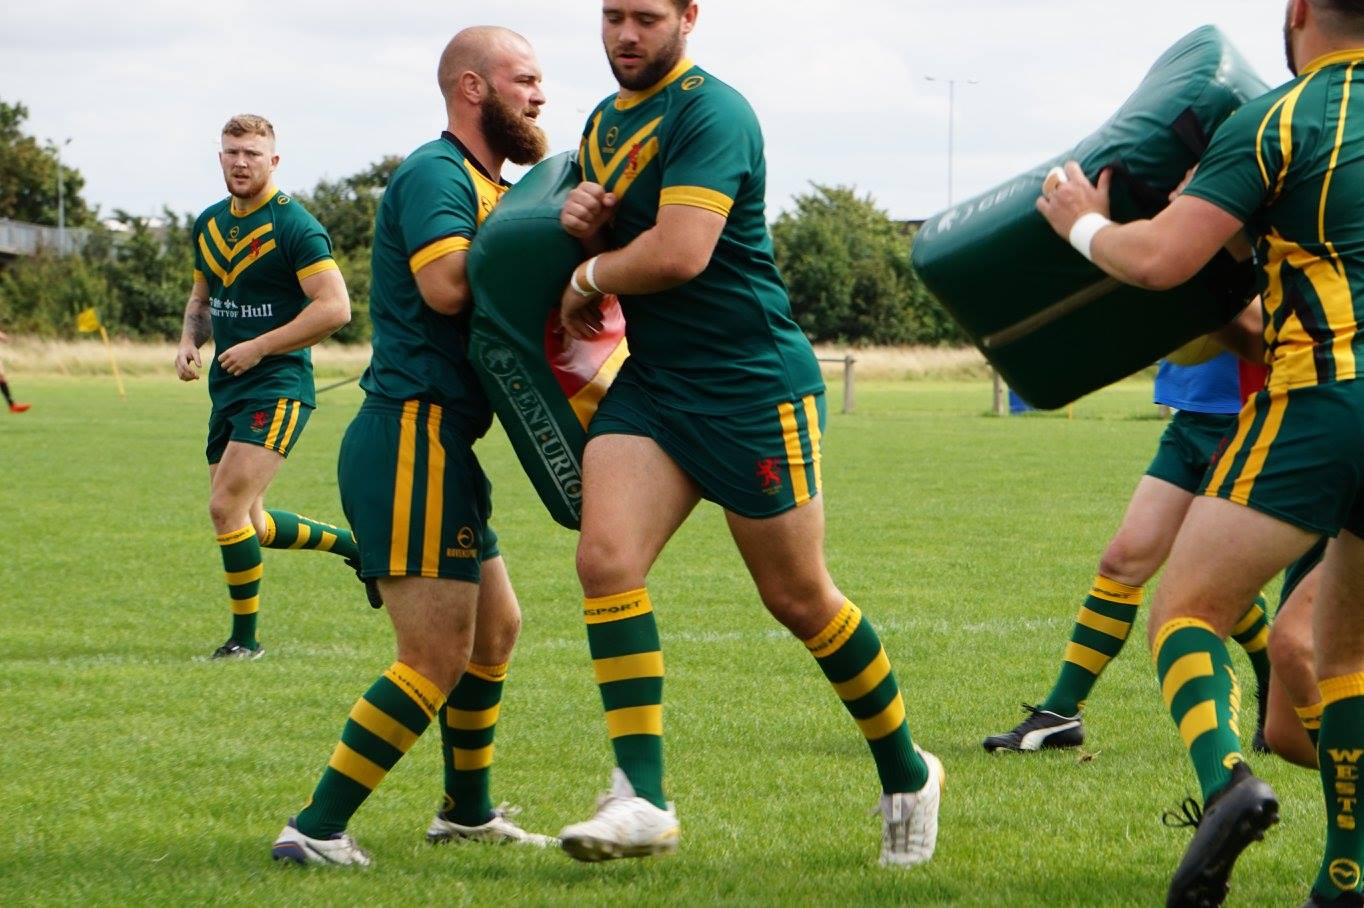 Longhorns take on West Hull this Sunday at North Road